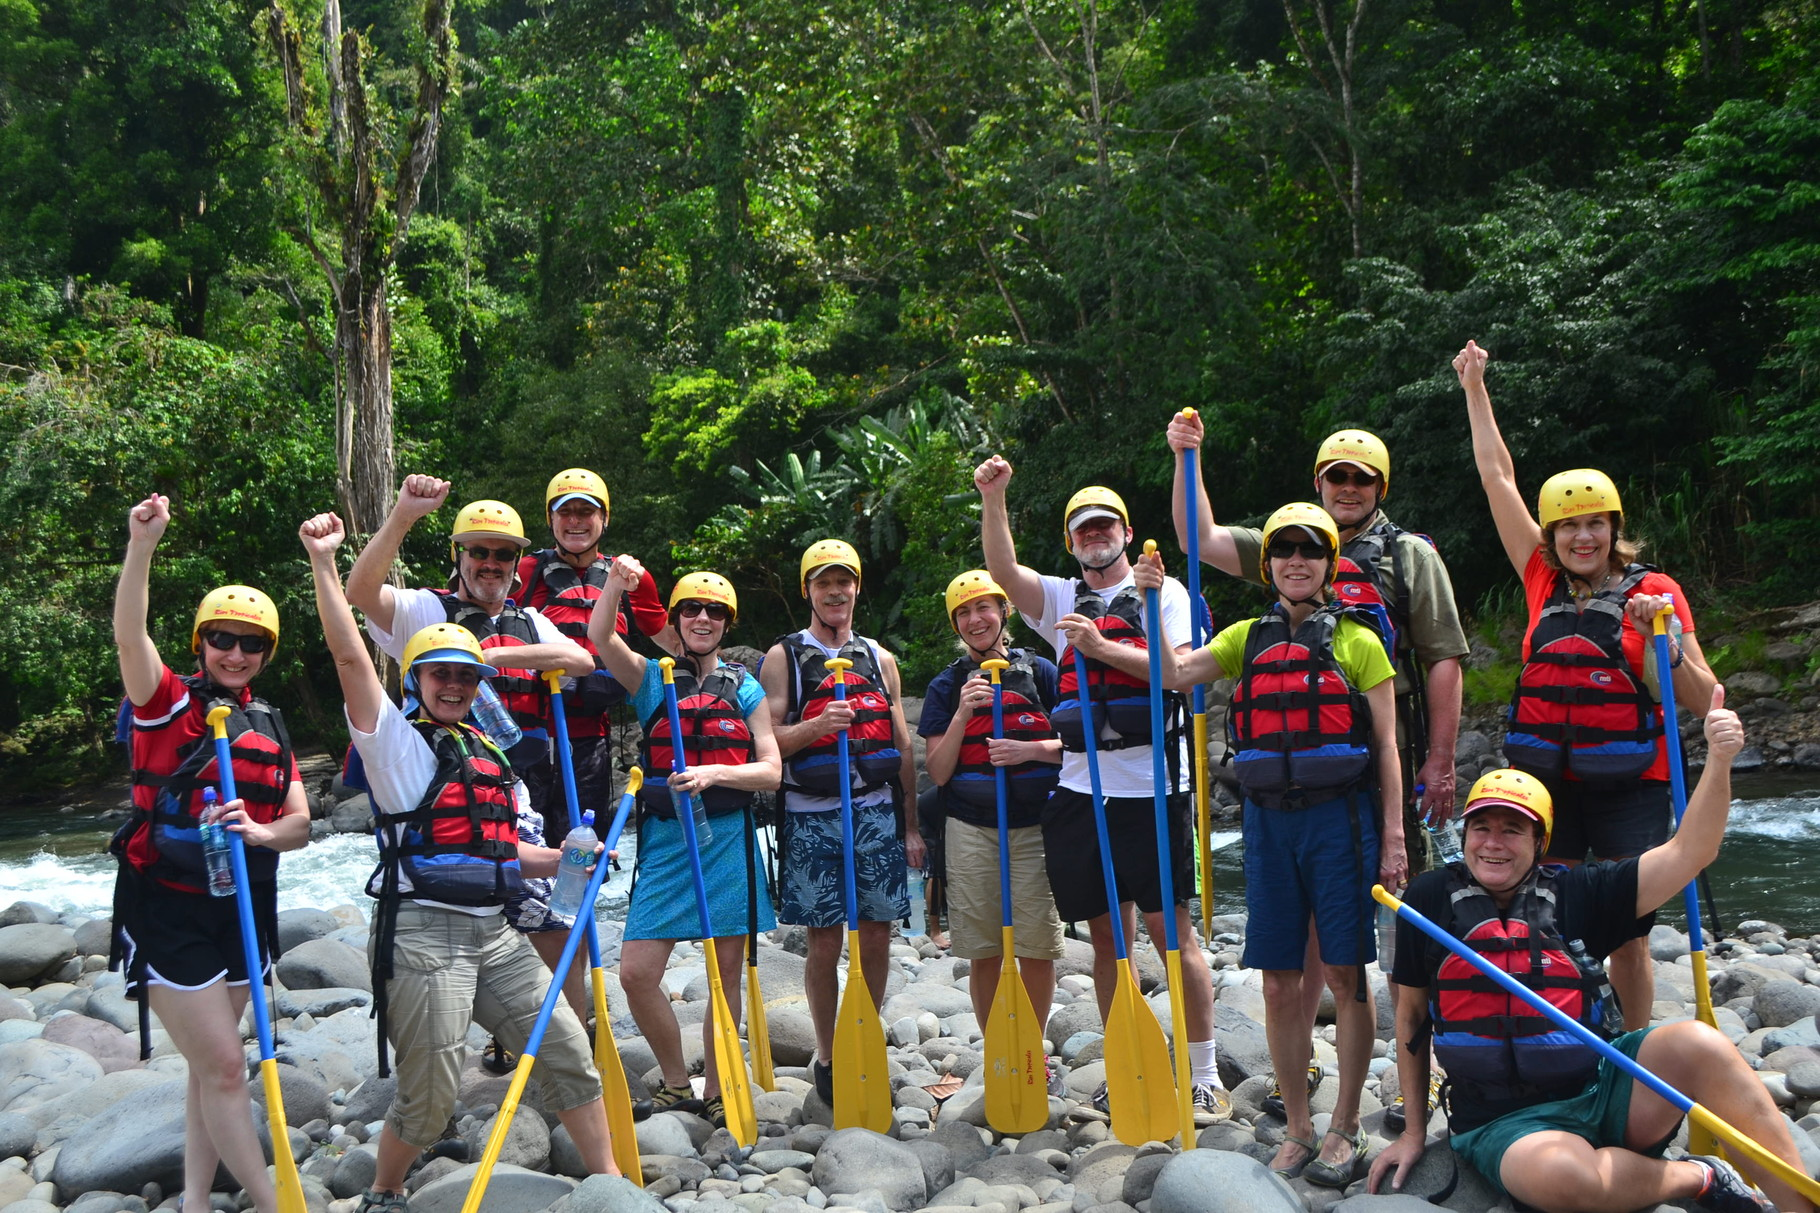 Whitewater rafting on the Pacuare River, Costa Rica, Feb. 4, 2016 Lorraine standing, John sitting far right.